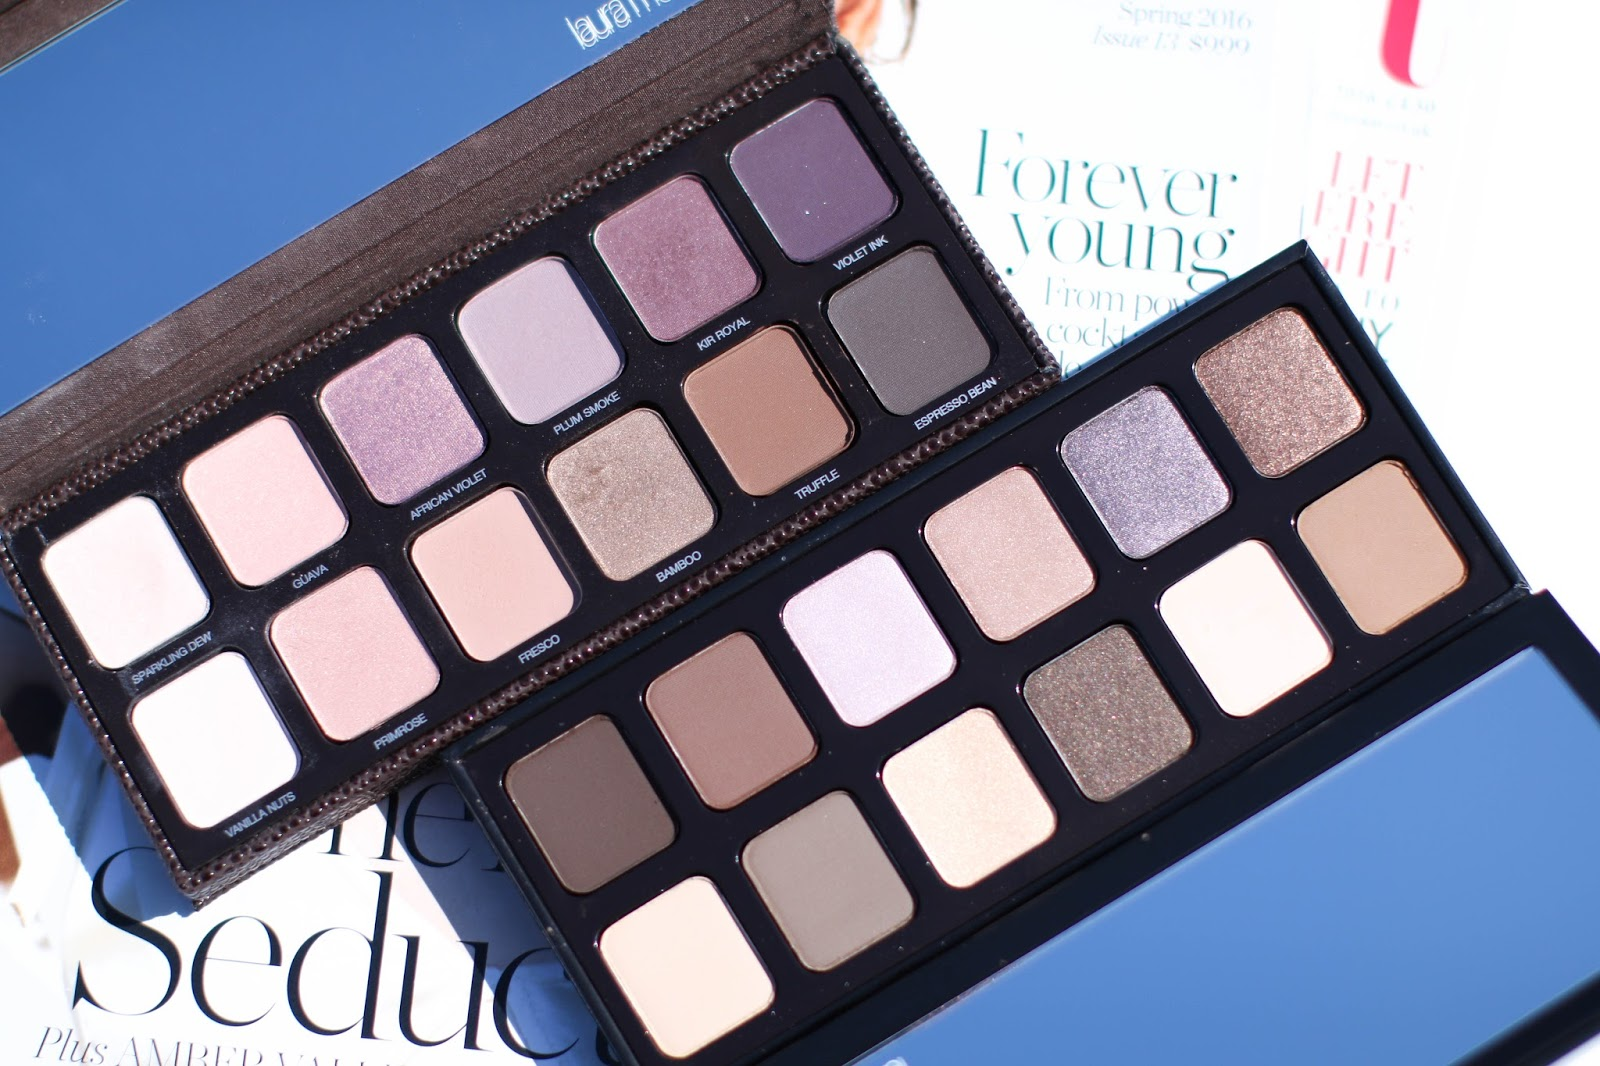 Review and Comparisons: Laura Mercier Artist's Palette vs. Extreme Neutrals Palette with Swatches